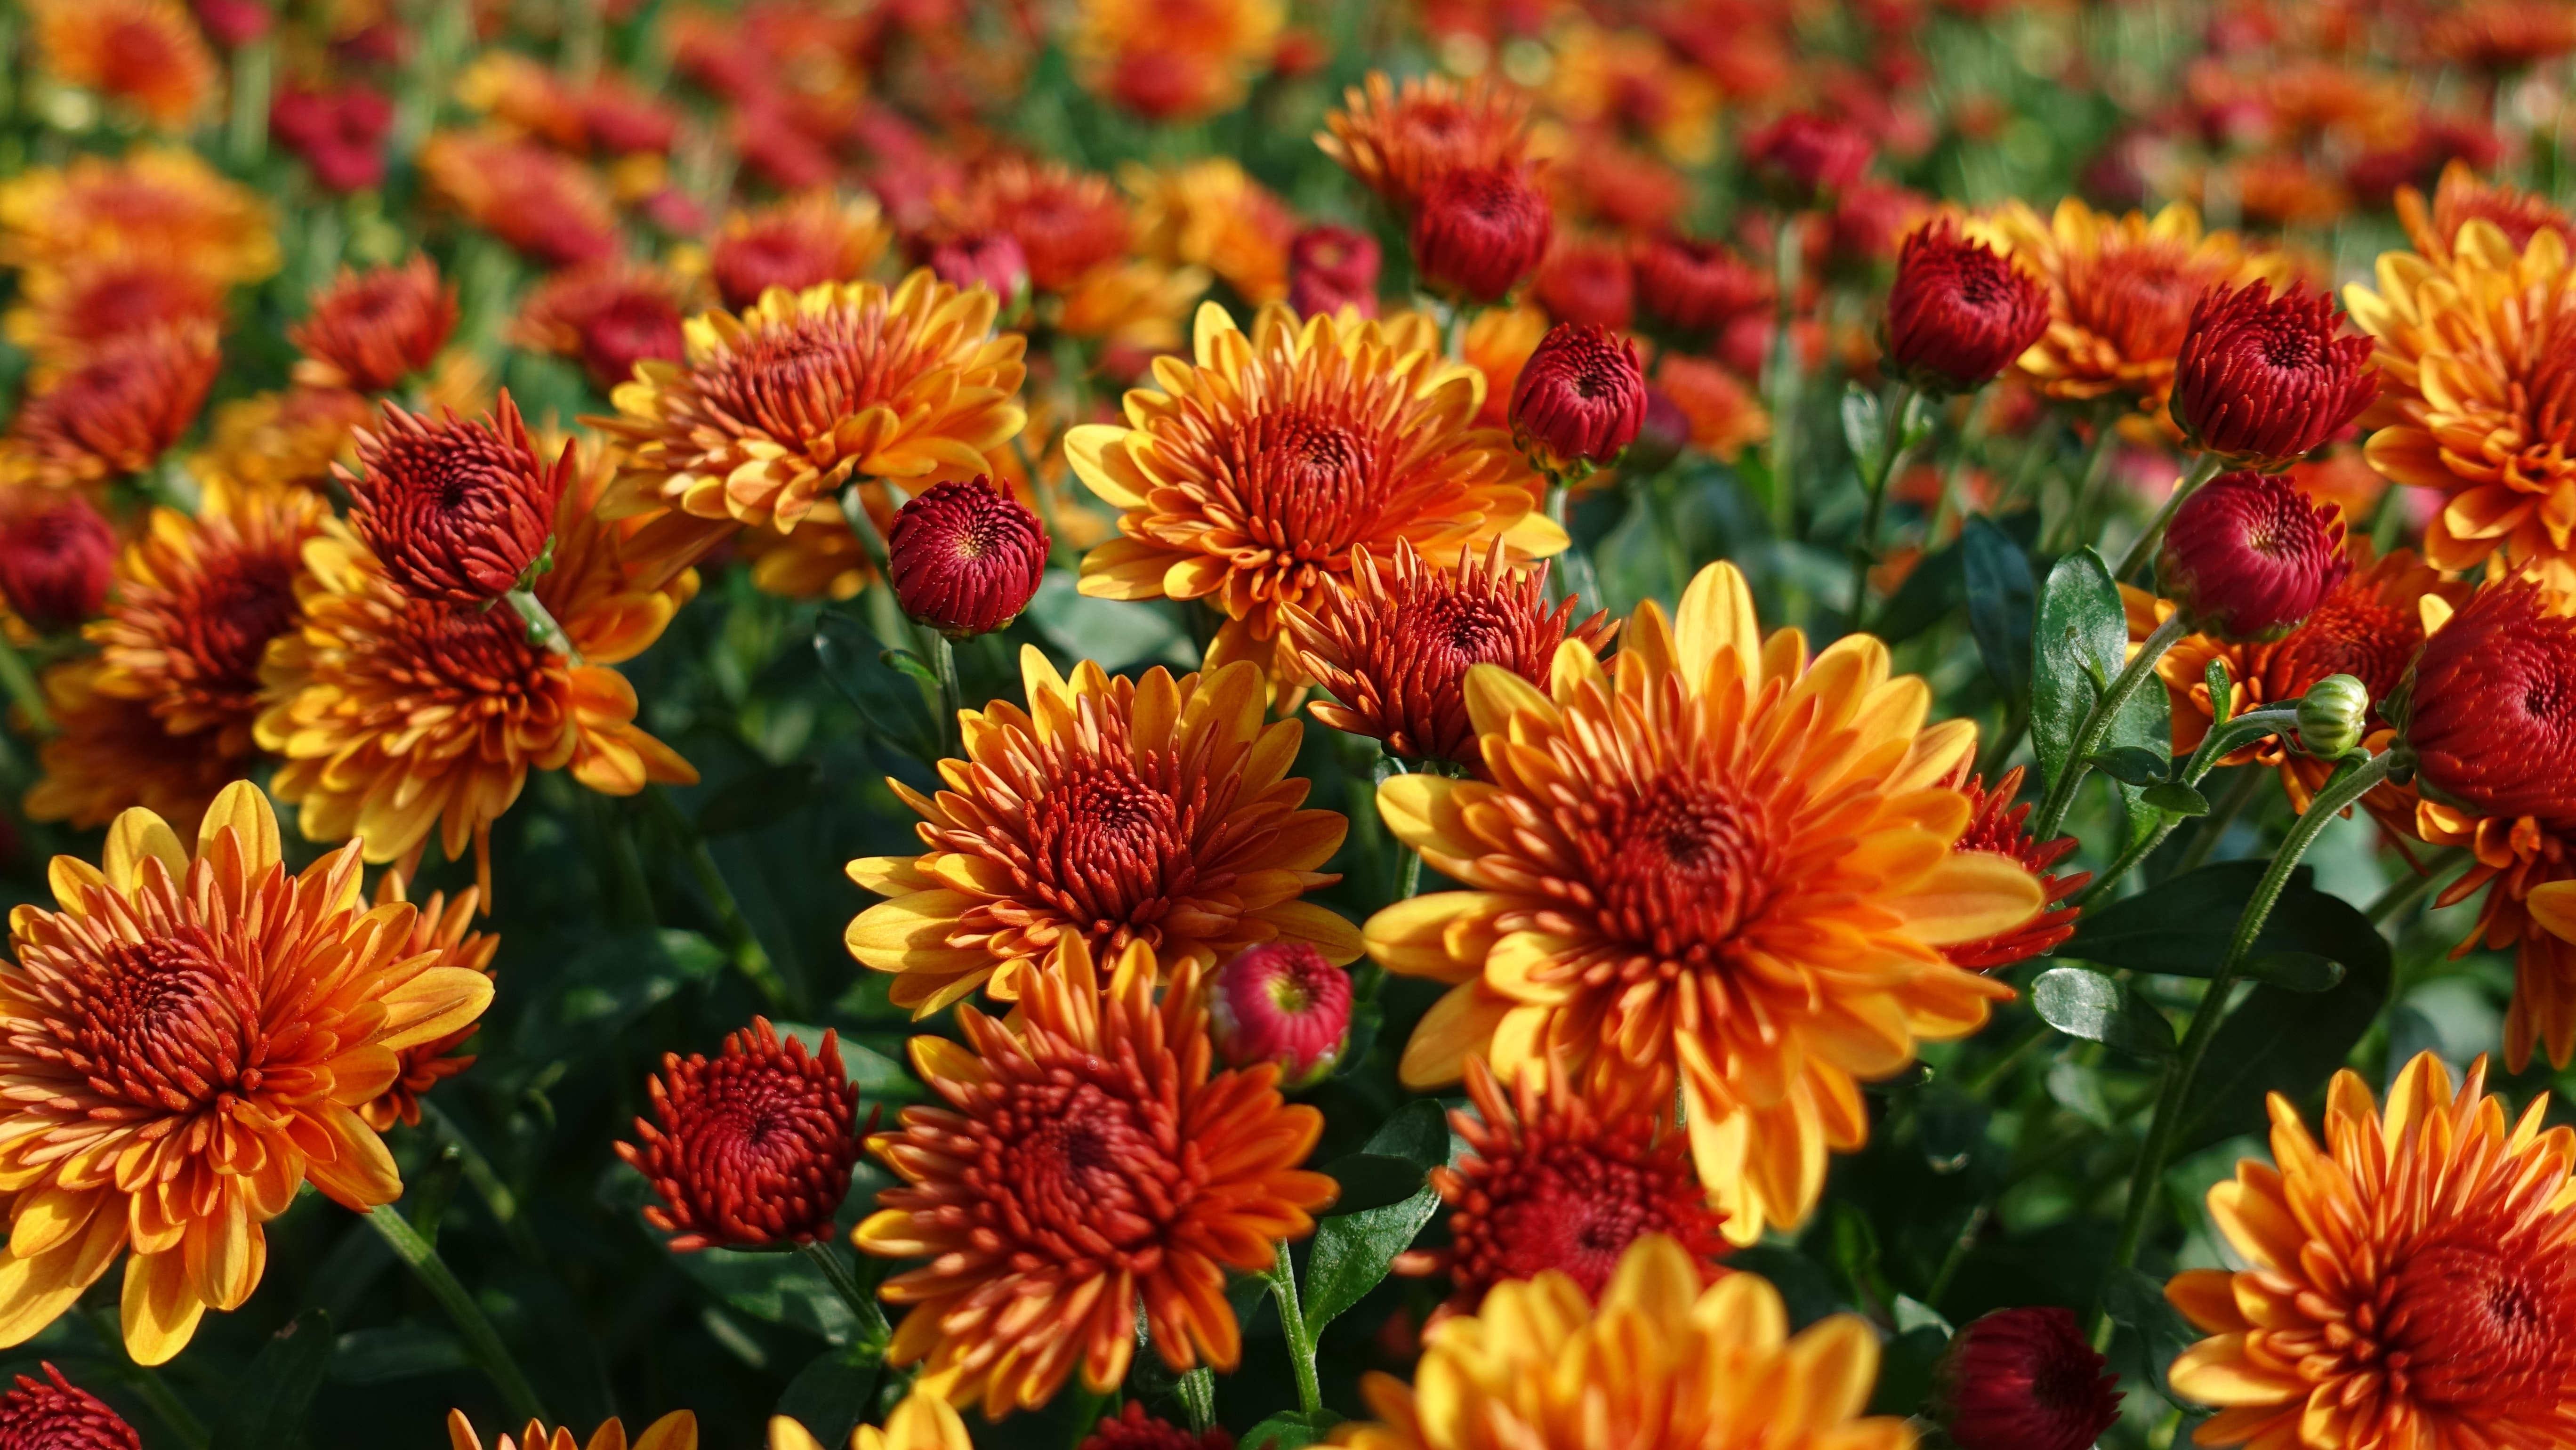 closeup photography of red-and-yellow petaled flowers